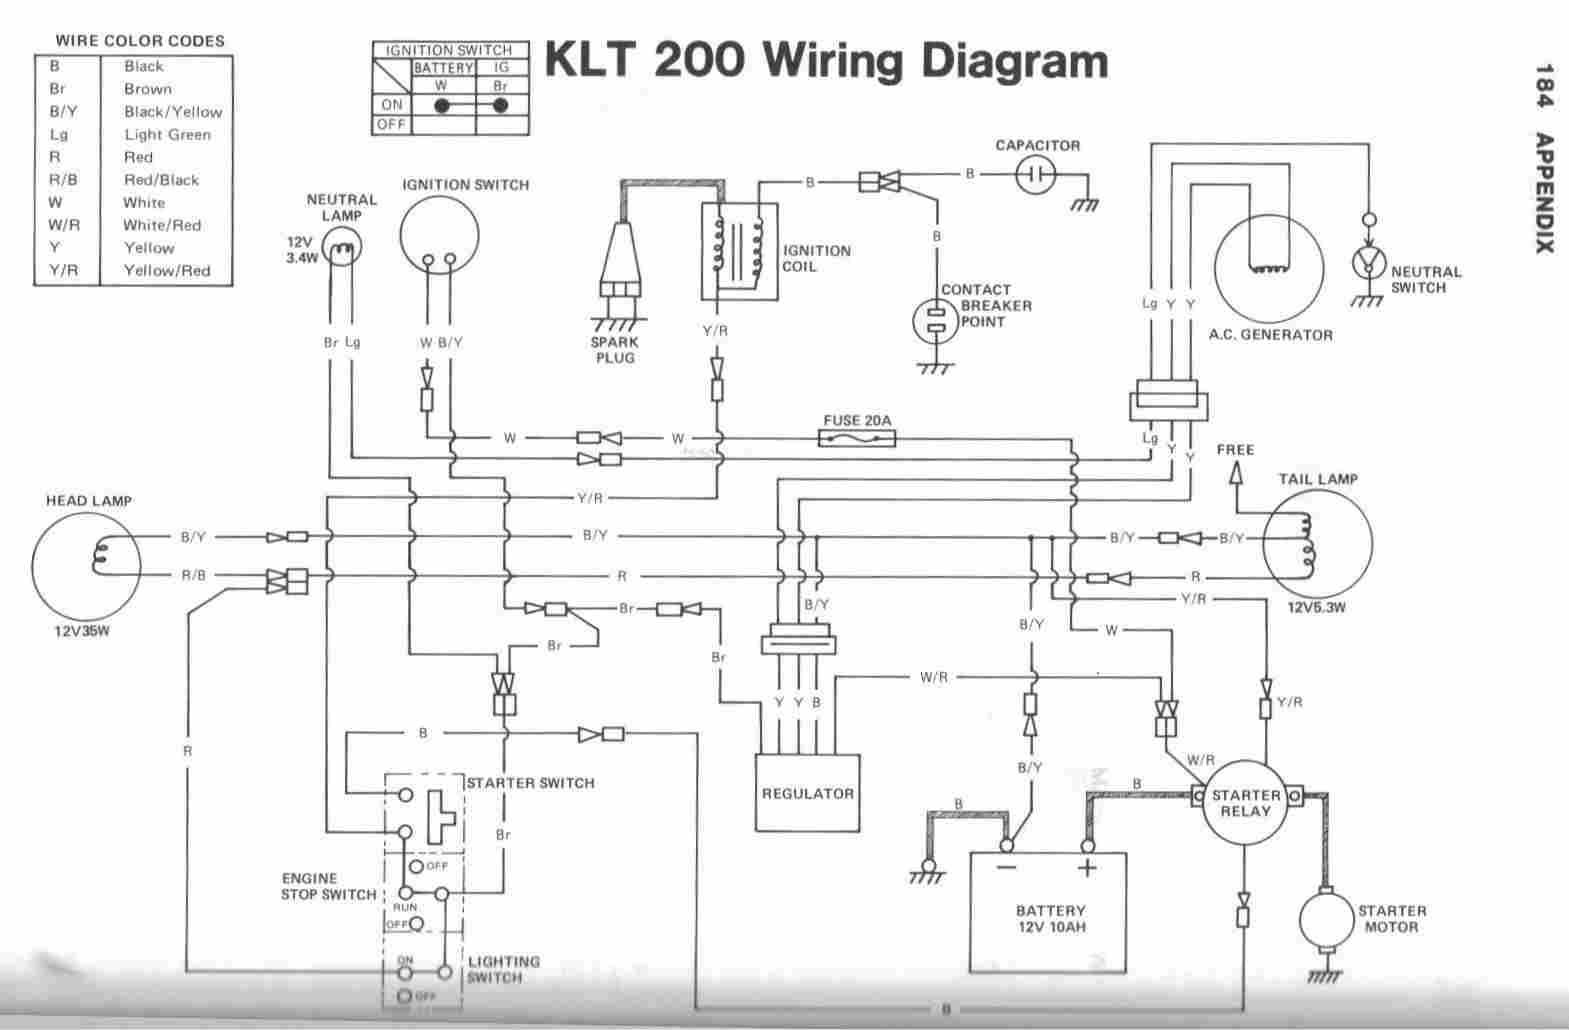 2869034594ce054a636782e5c44b61b4 residential electrical wiring diagrams pdf easy routing cool circuit wiring diagram at reclaimingppi.co